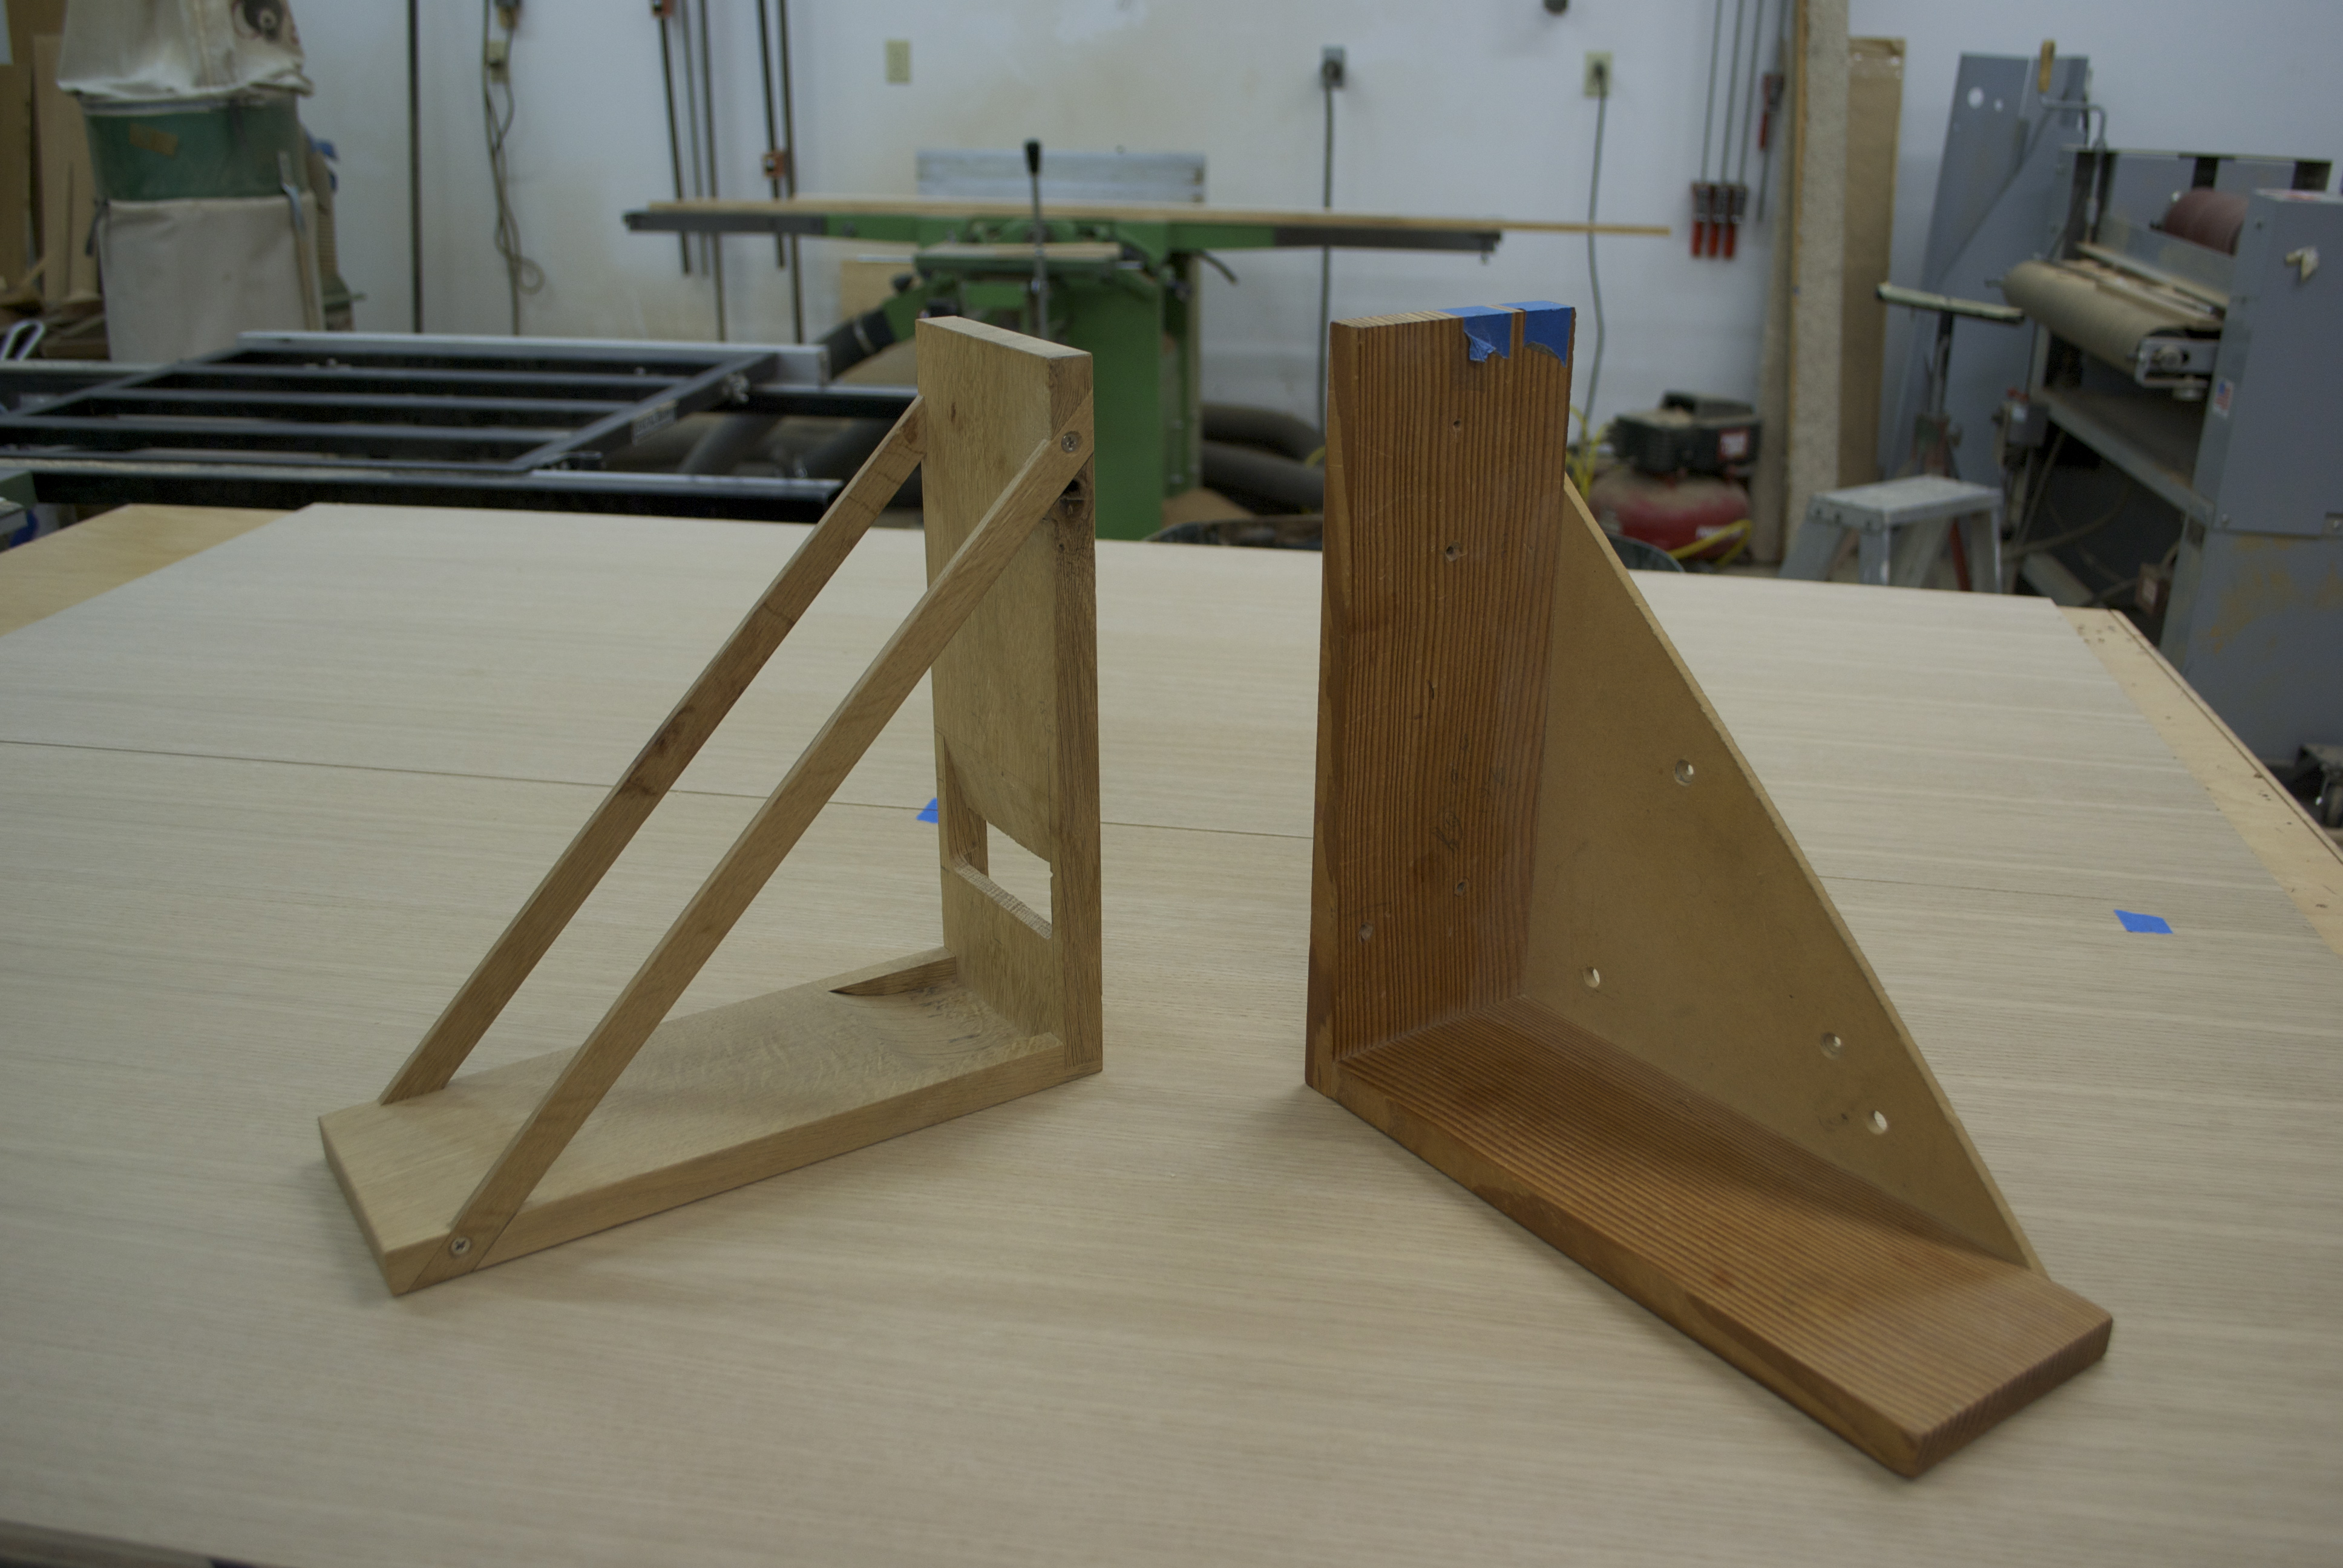 A Simple Jig Pocket Hole Joinery Tips